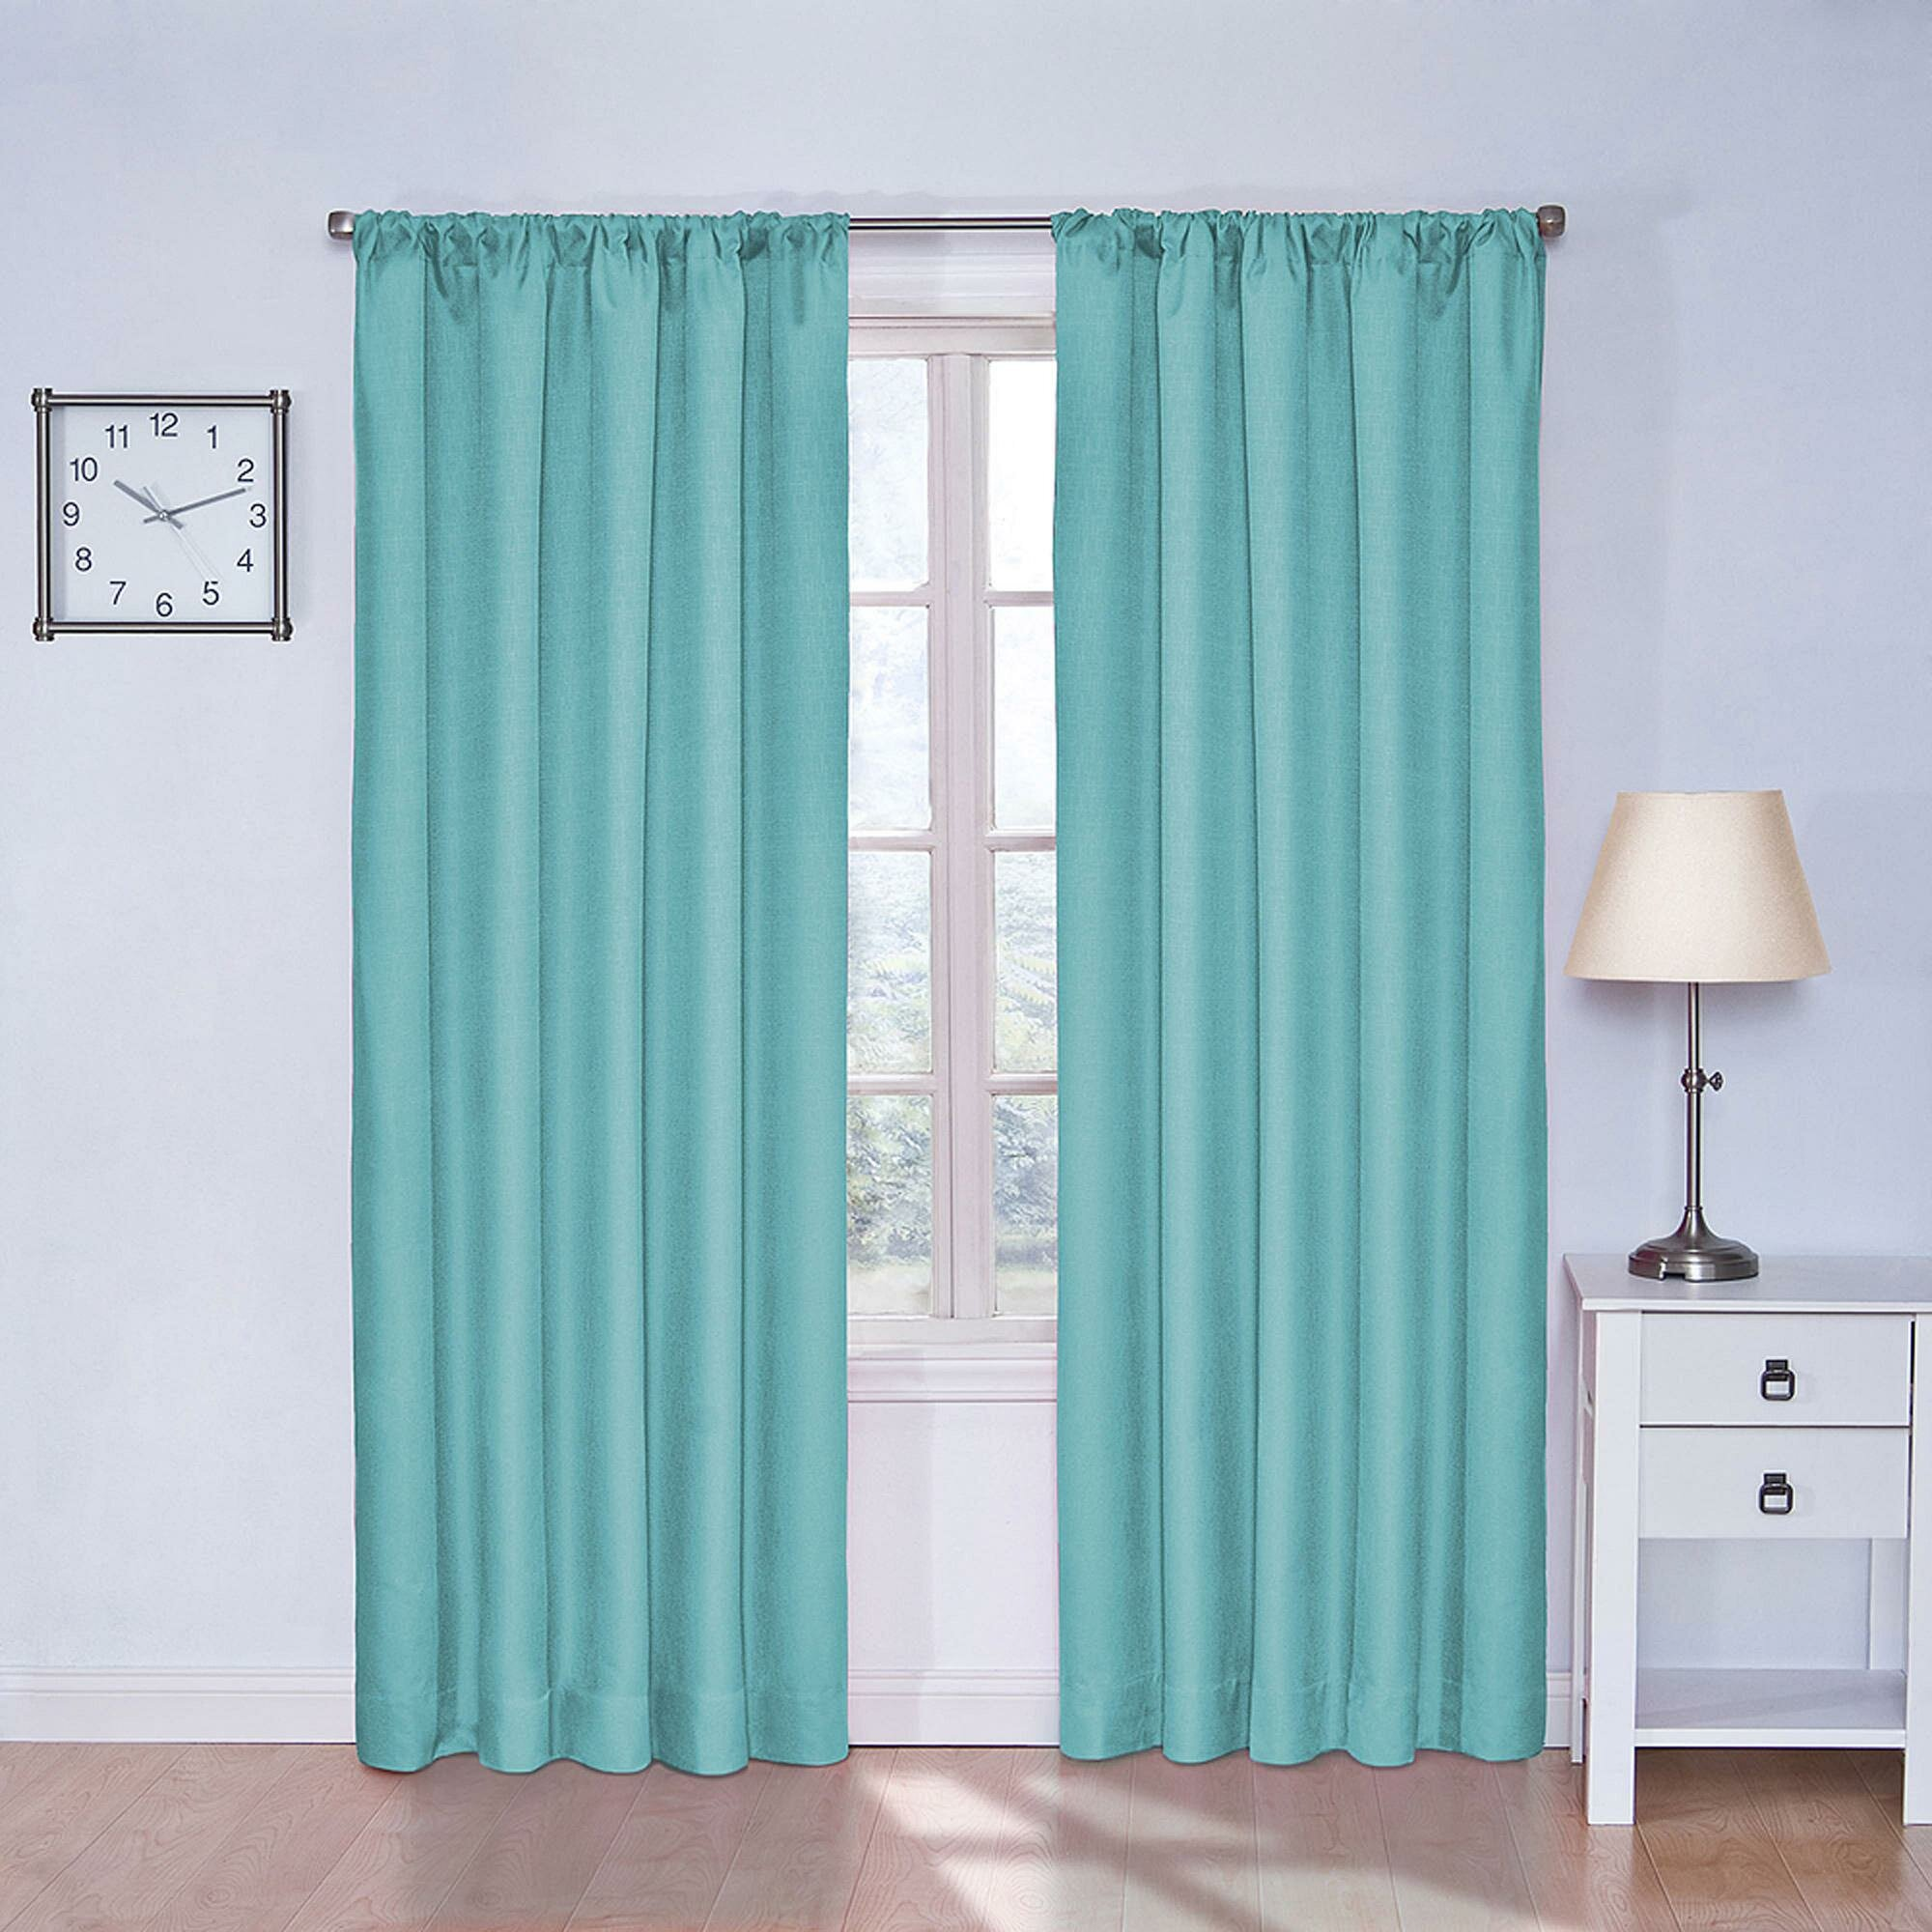 Curtain Curtains At Walmart For Elegant Home Accessories